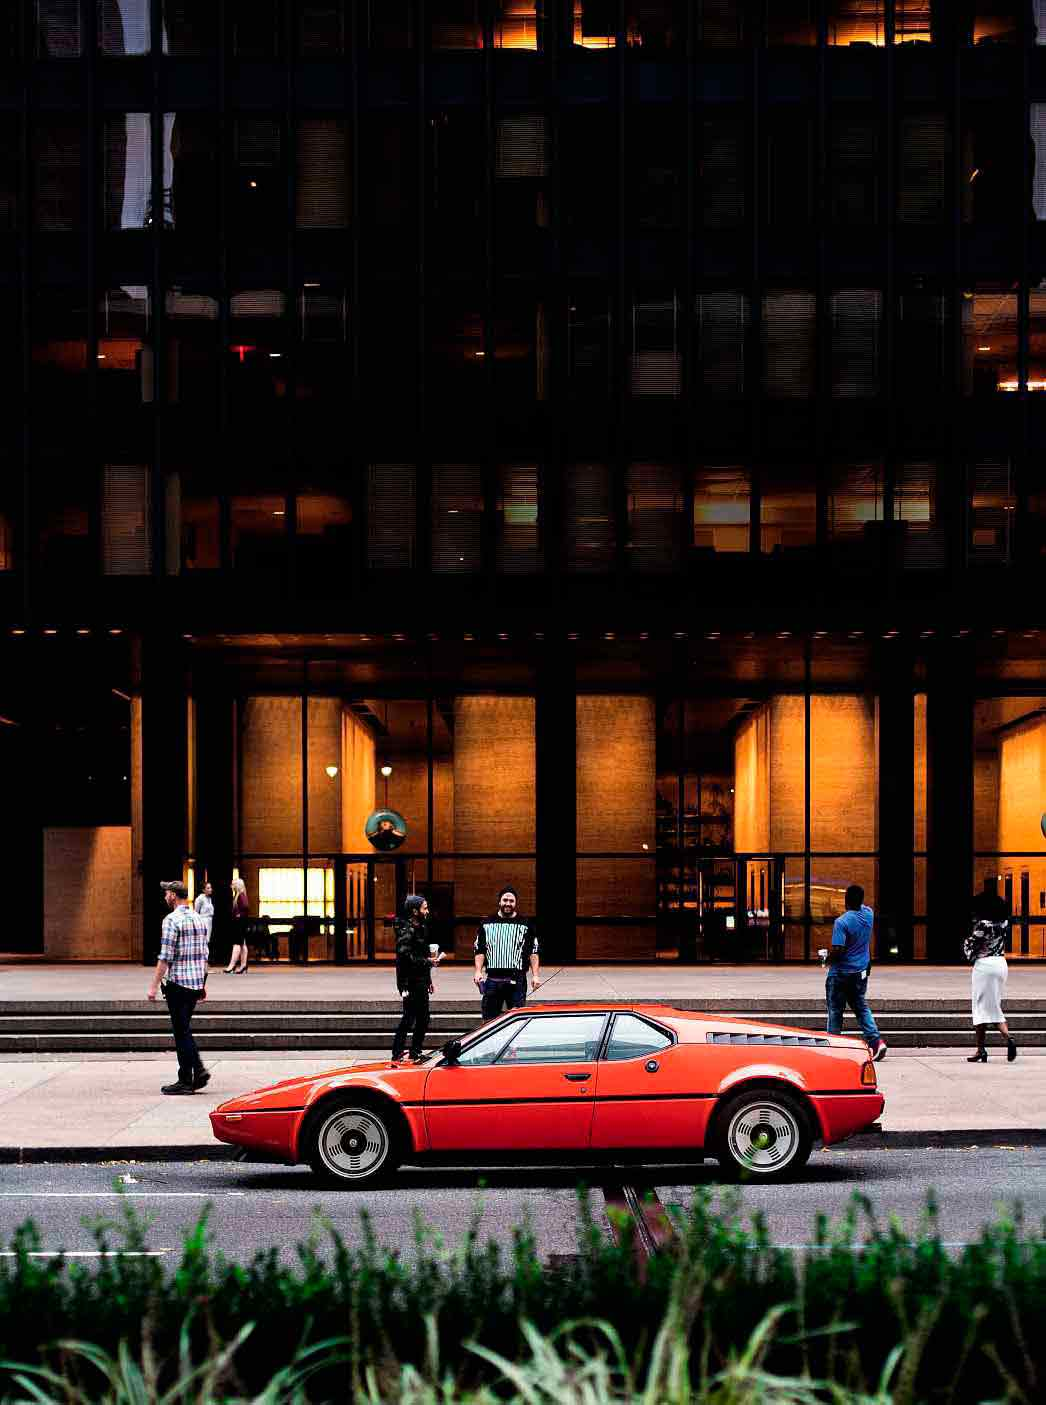 1981 BMW M1 E26 on New York's streets driven